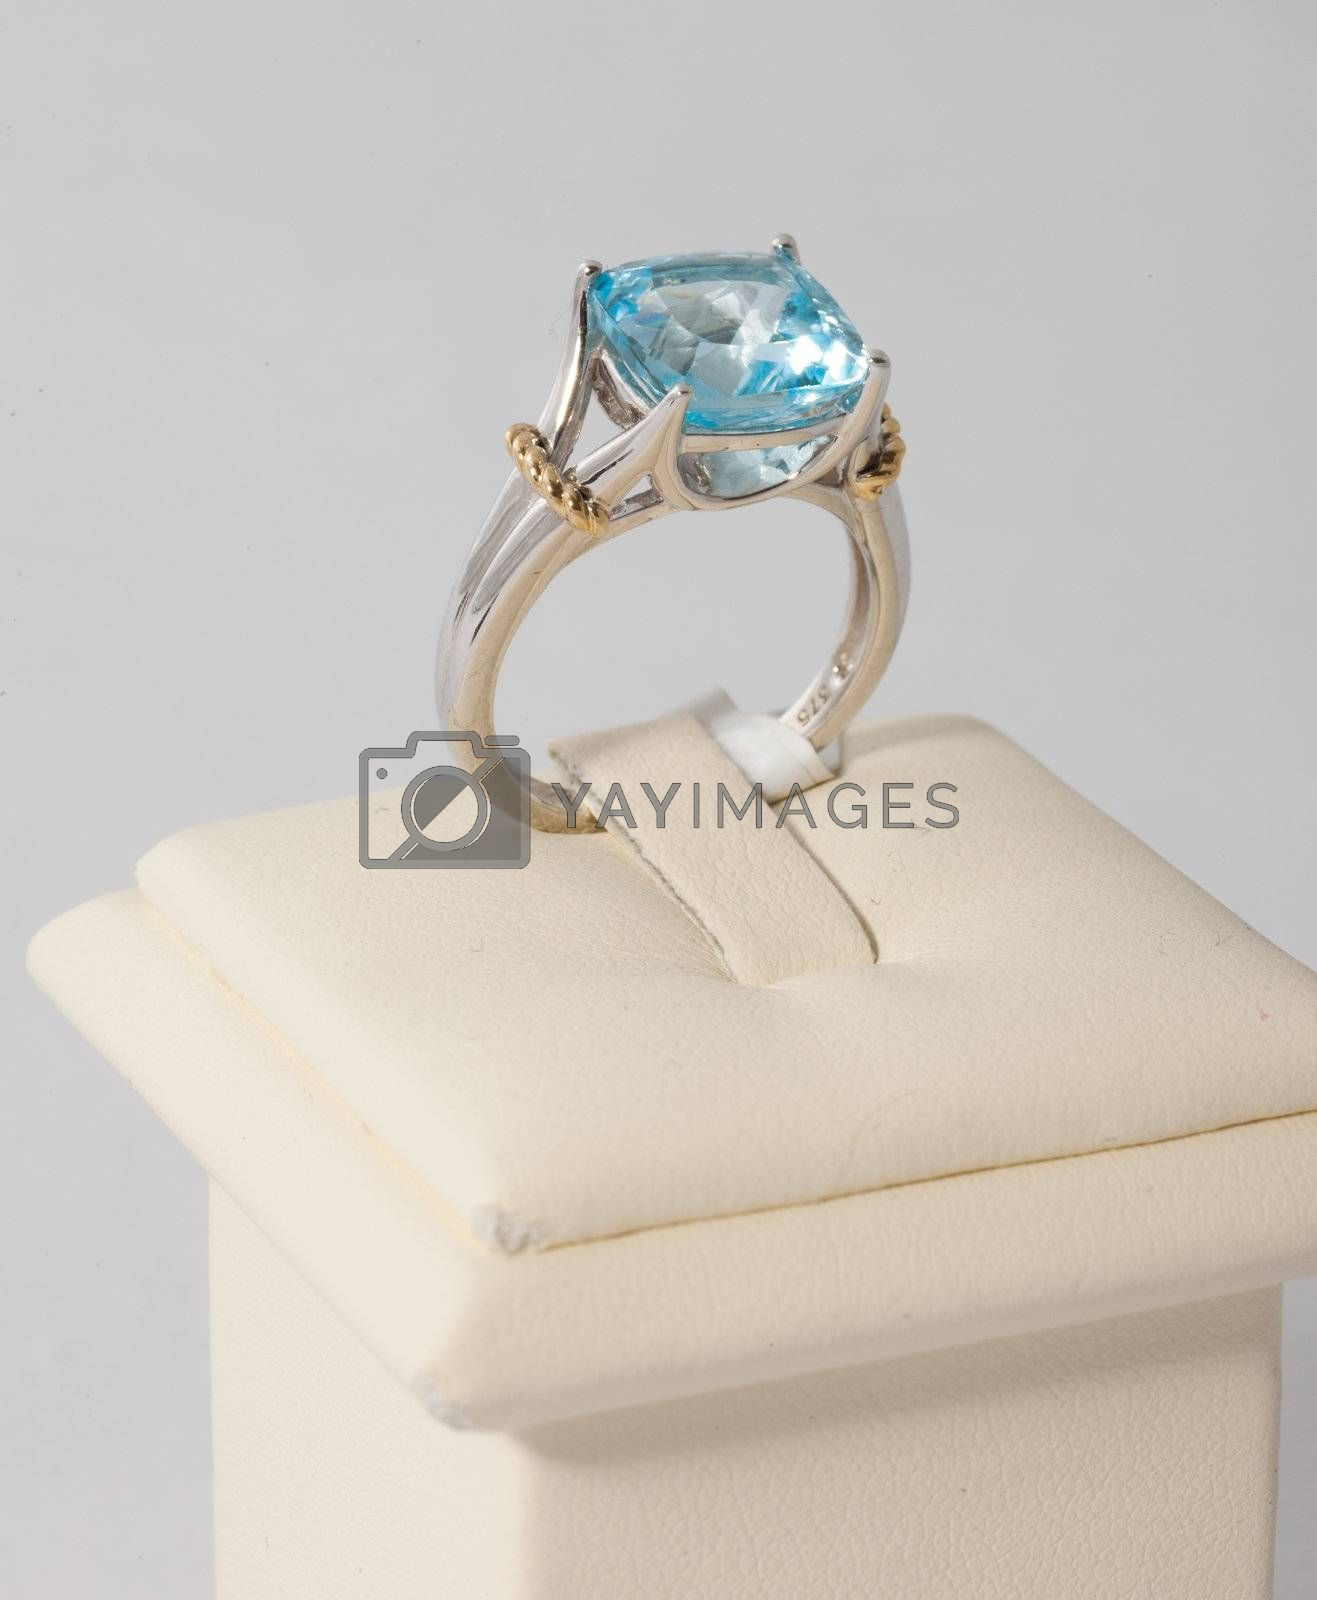 Ring with blue stone on display stand